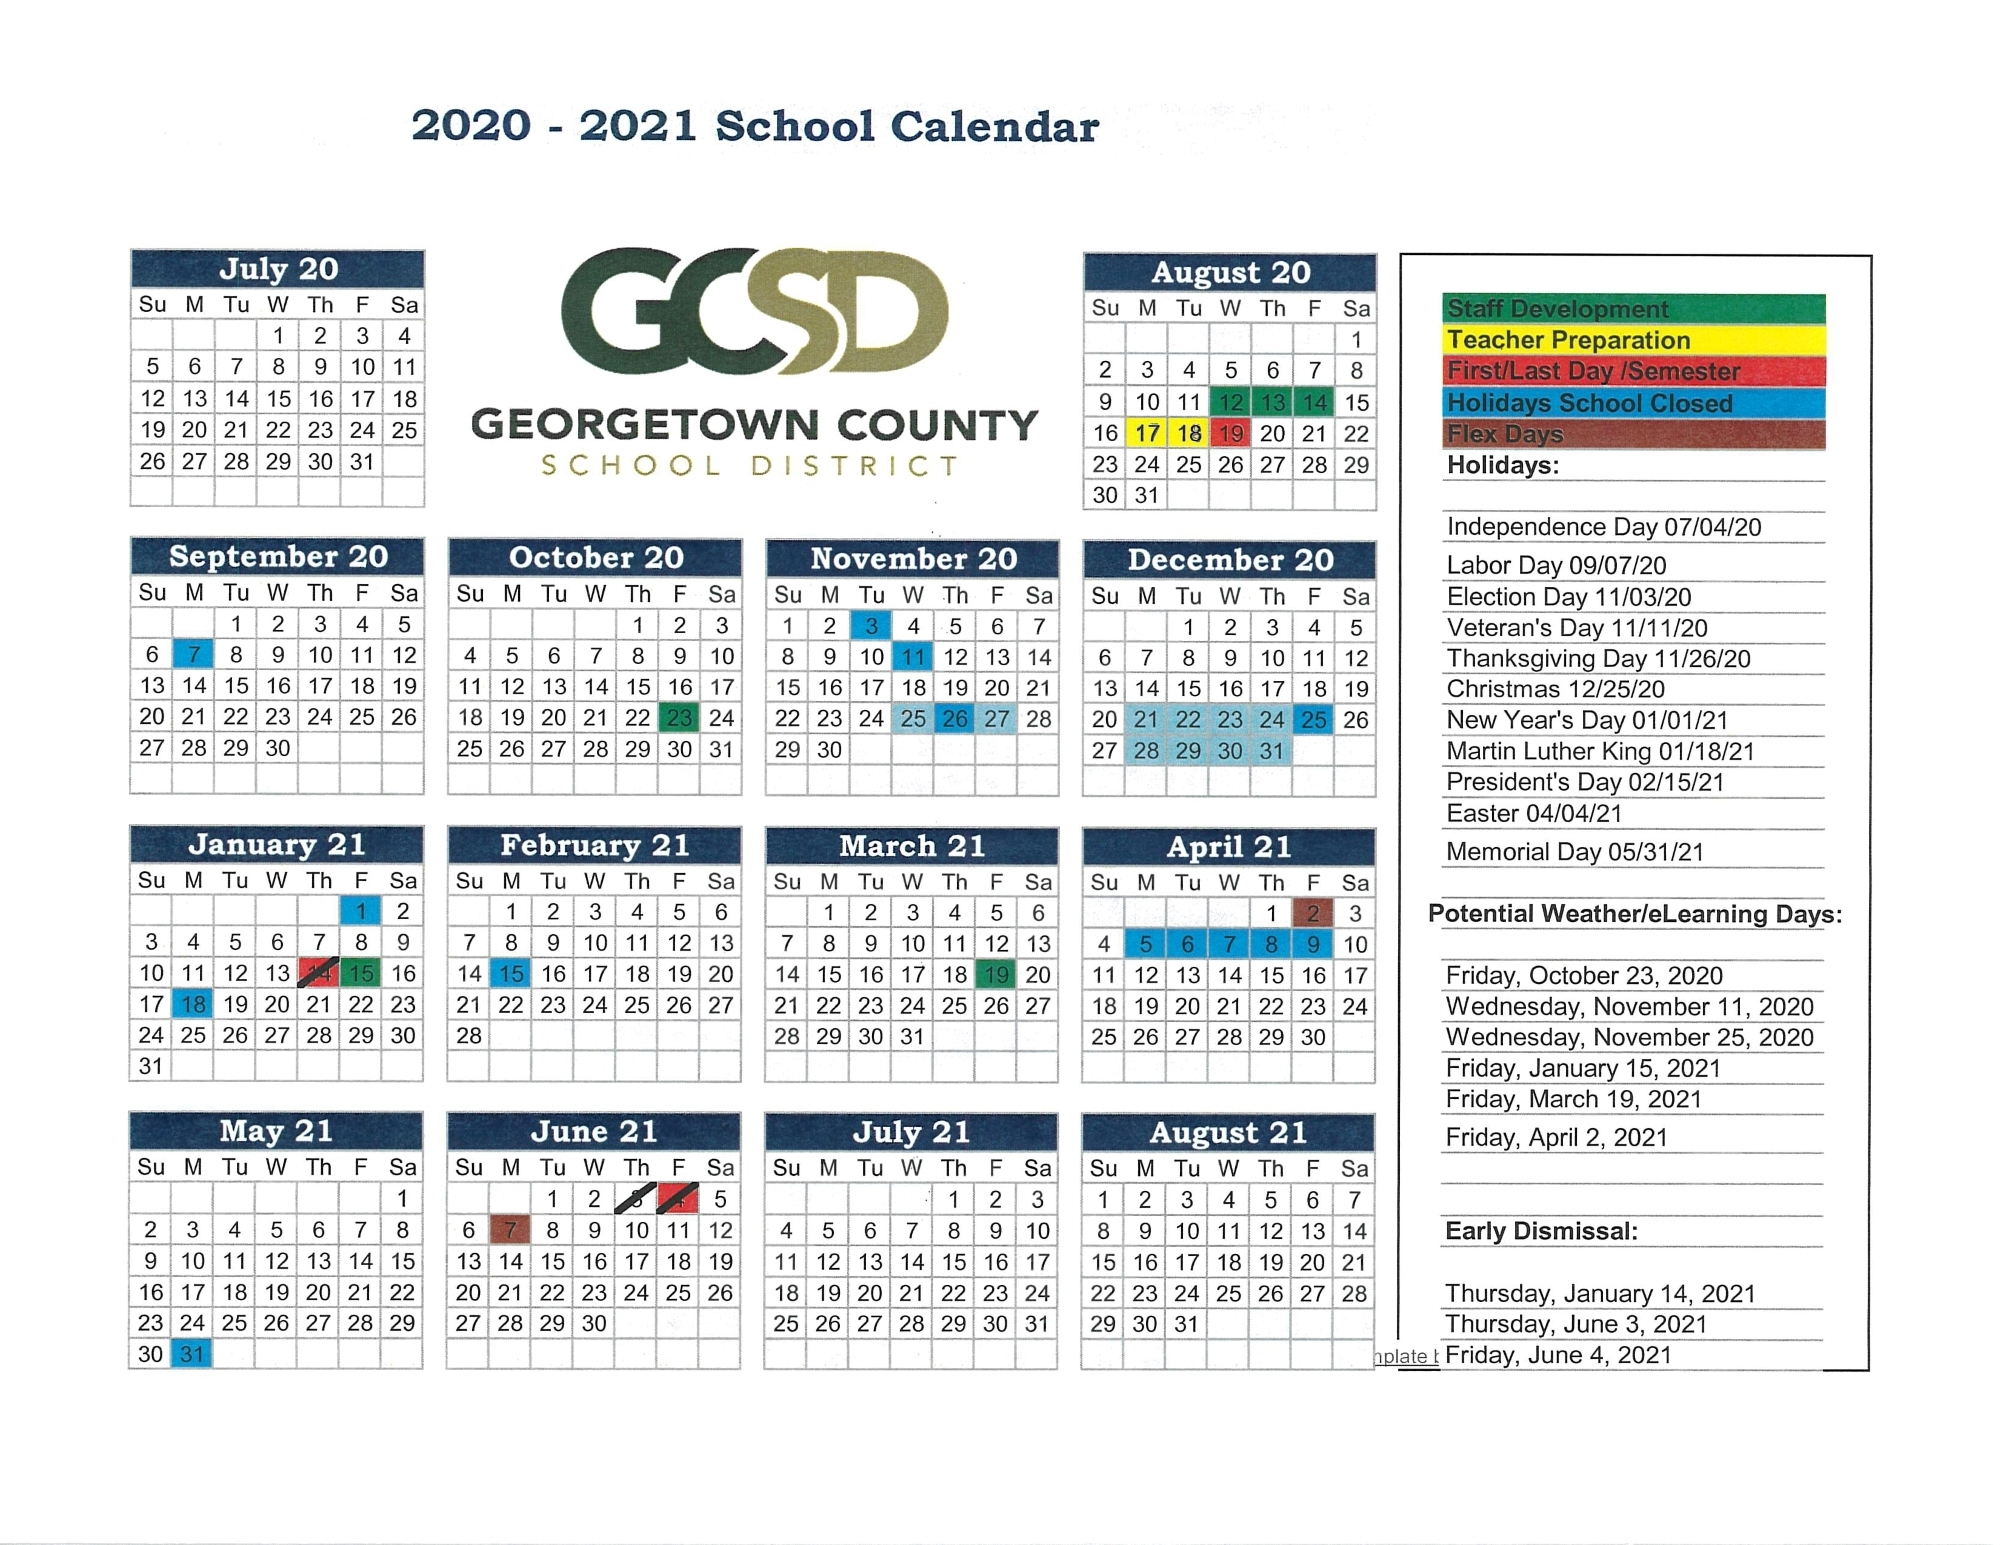 2020-2021 School Year Calendar - Georgetown County School